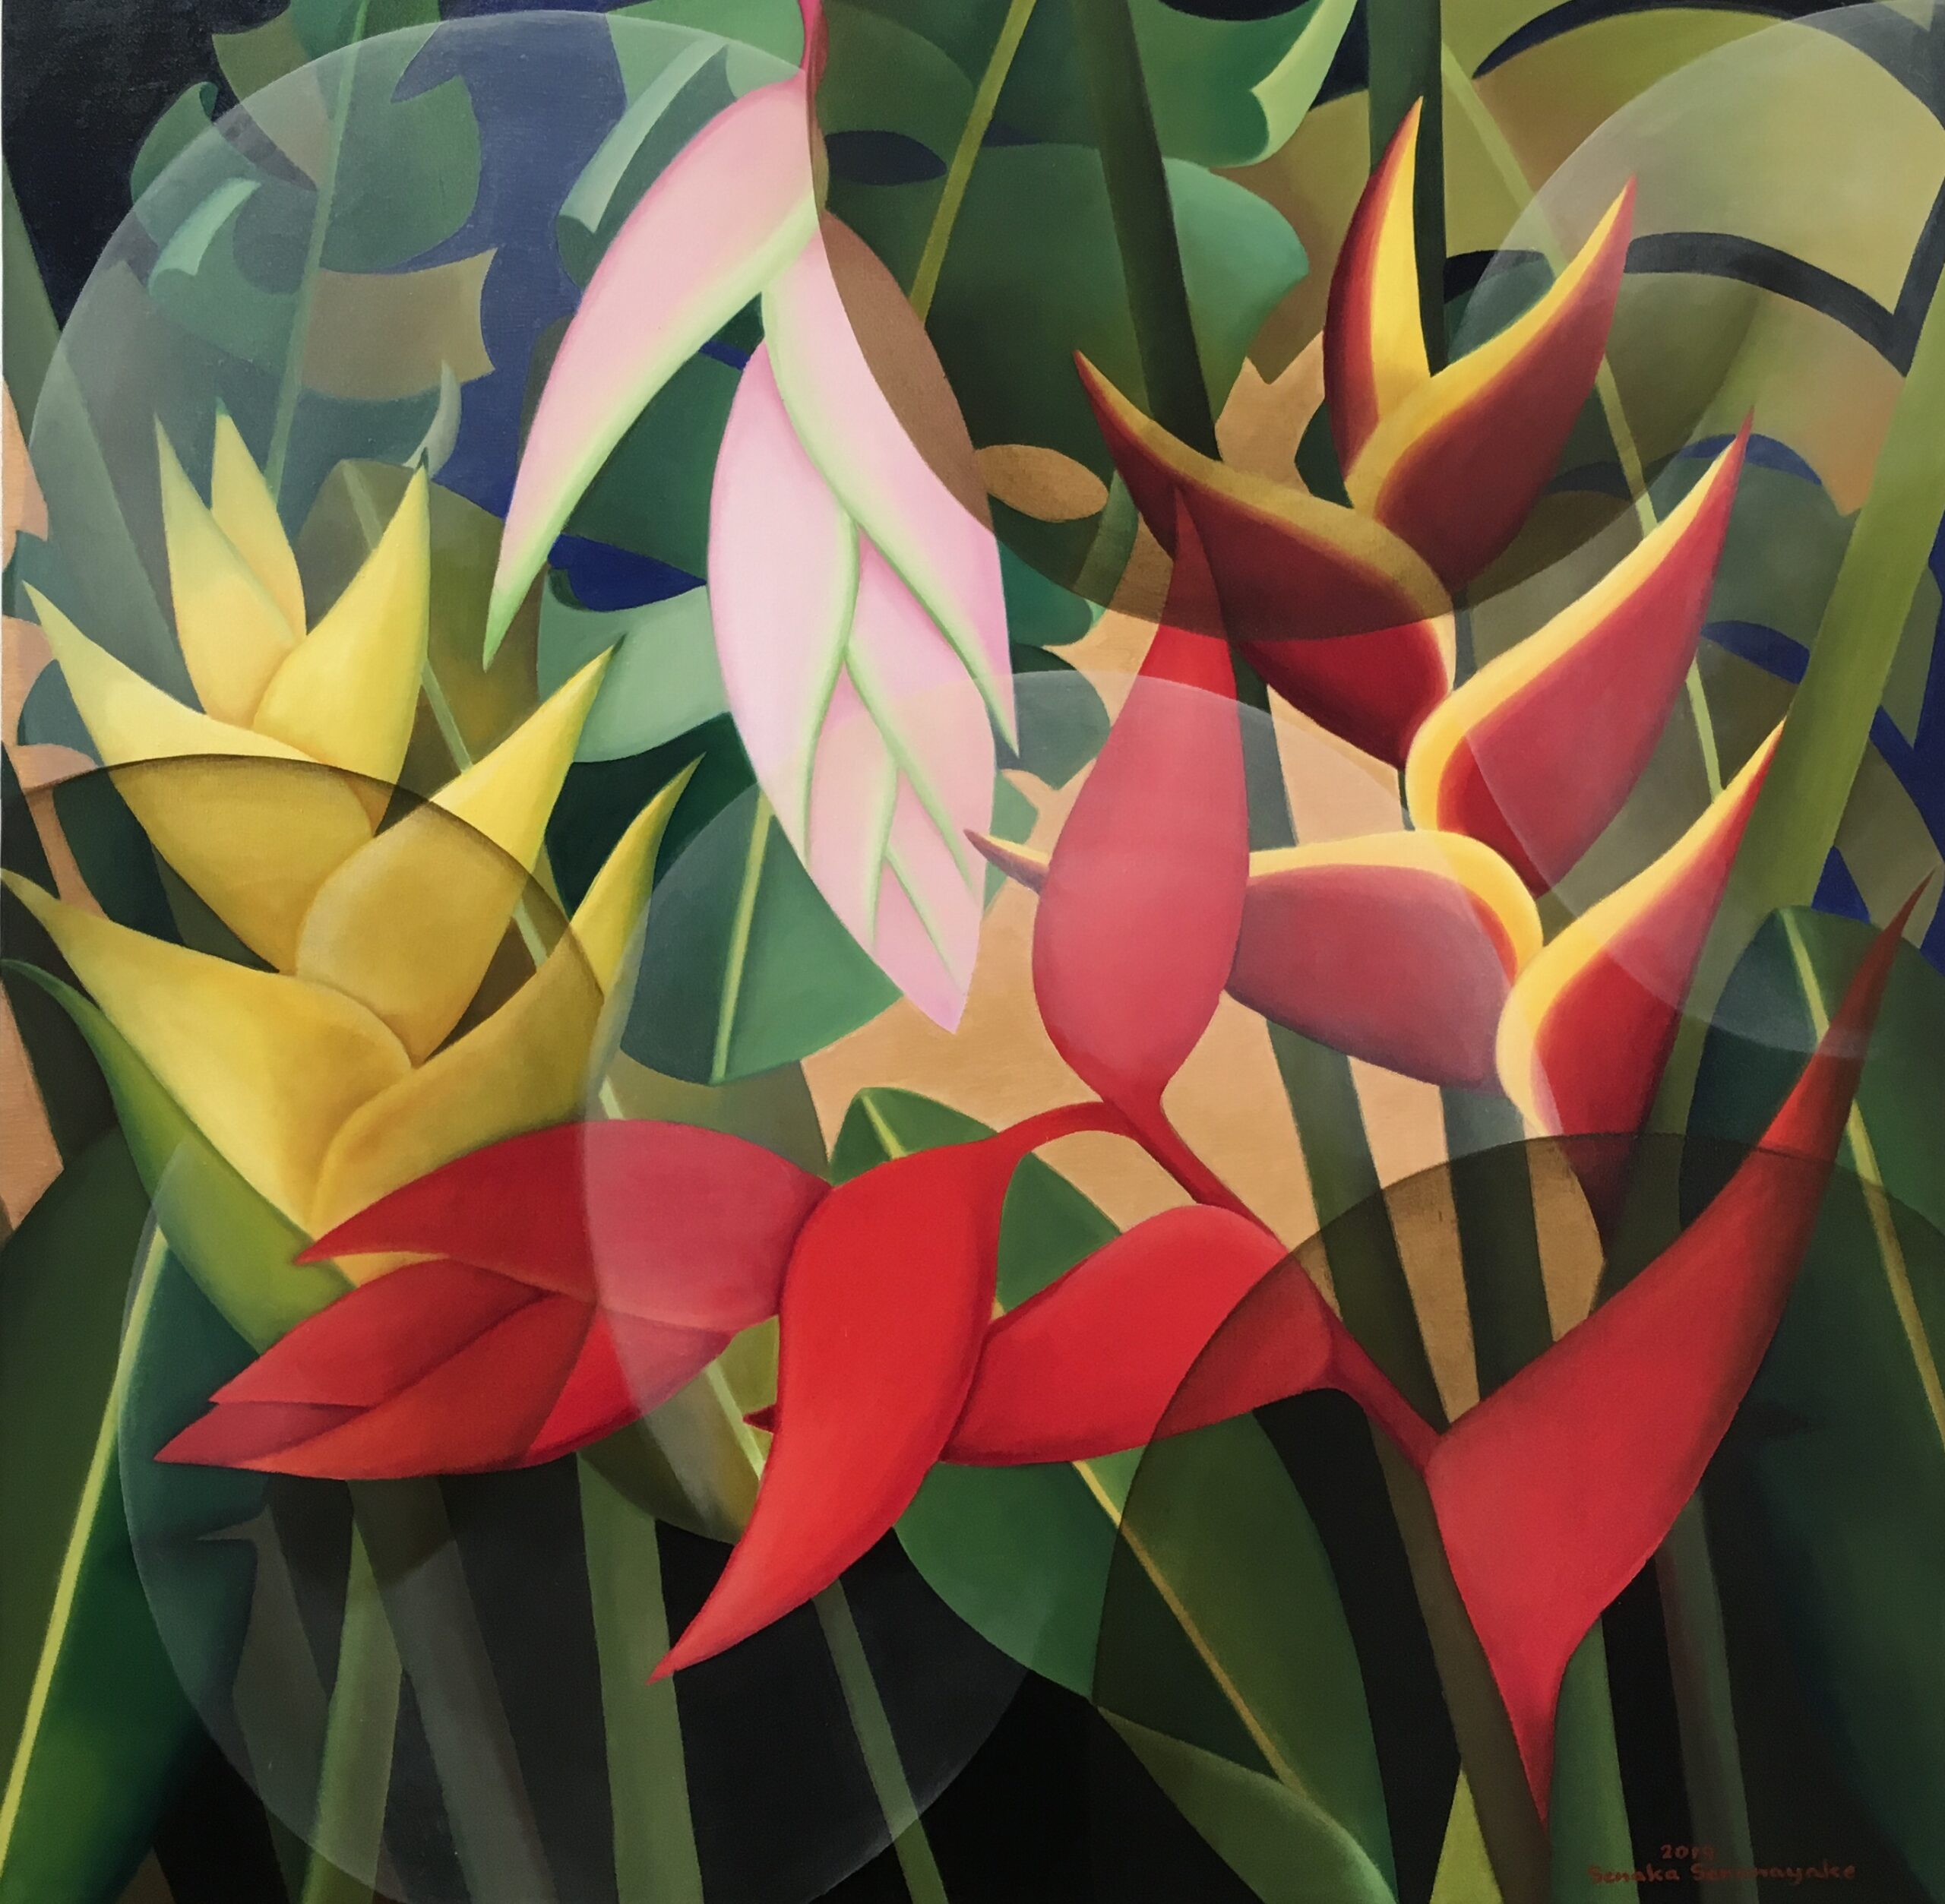 SENAKA SENANAYAKE (b. 1951) 